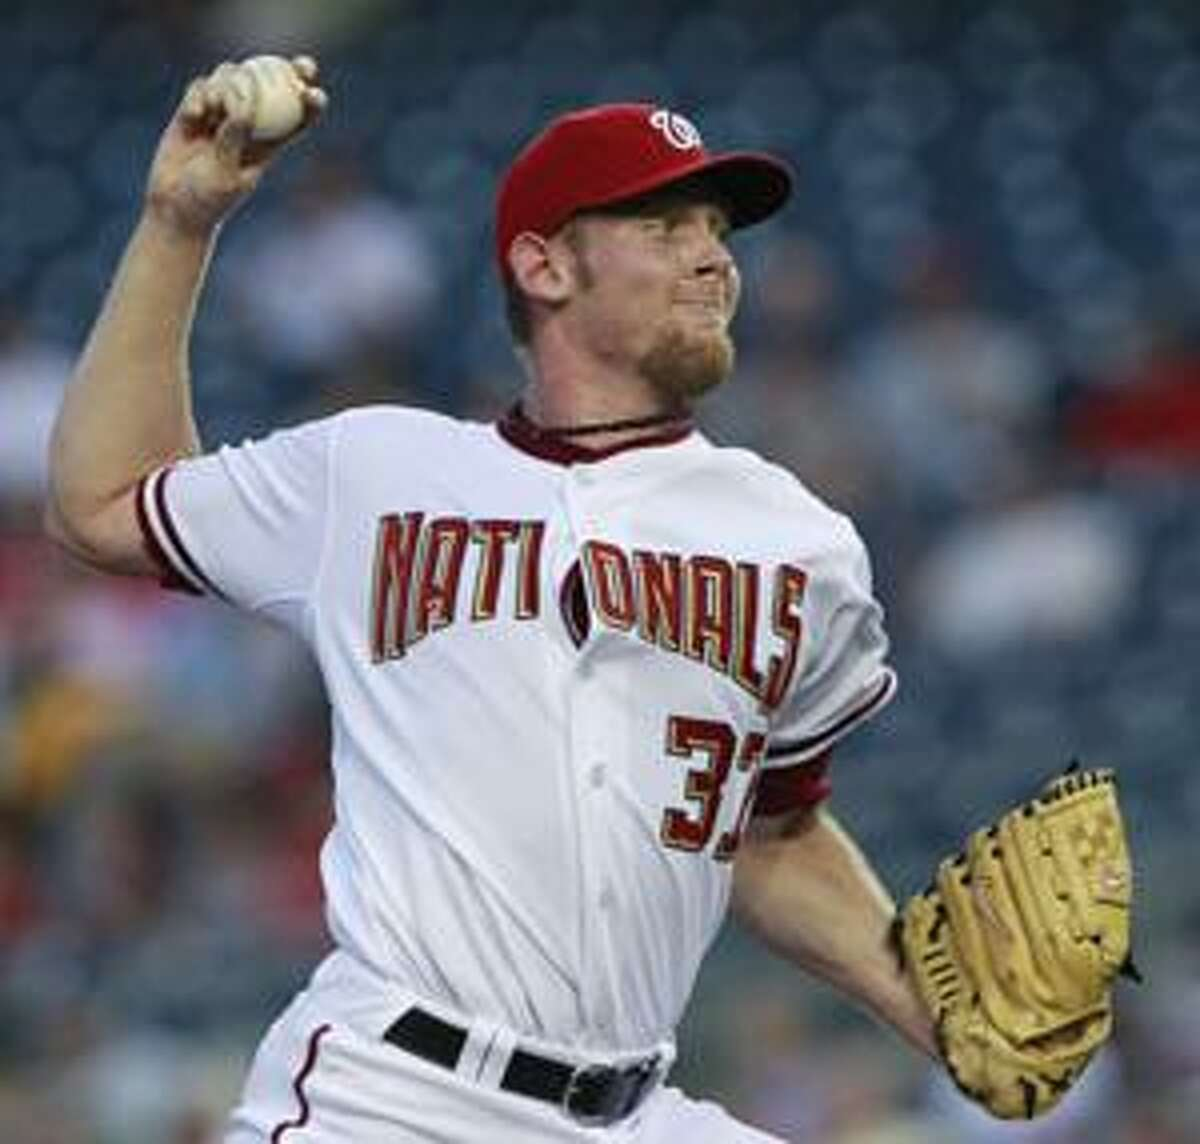 Washington Nationals starting pitcher Stephen Strasburg throws during the second inning of a baseball game against the Florida Marlins, Tuesday, Aug. 10, 2010, in Washington. (AP Photo/Manuel Balce Ceneta)